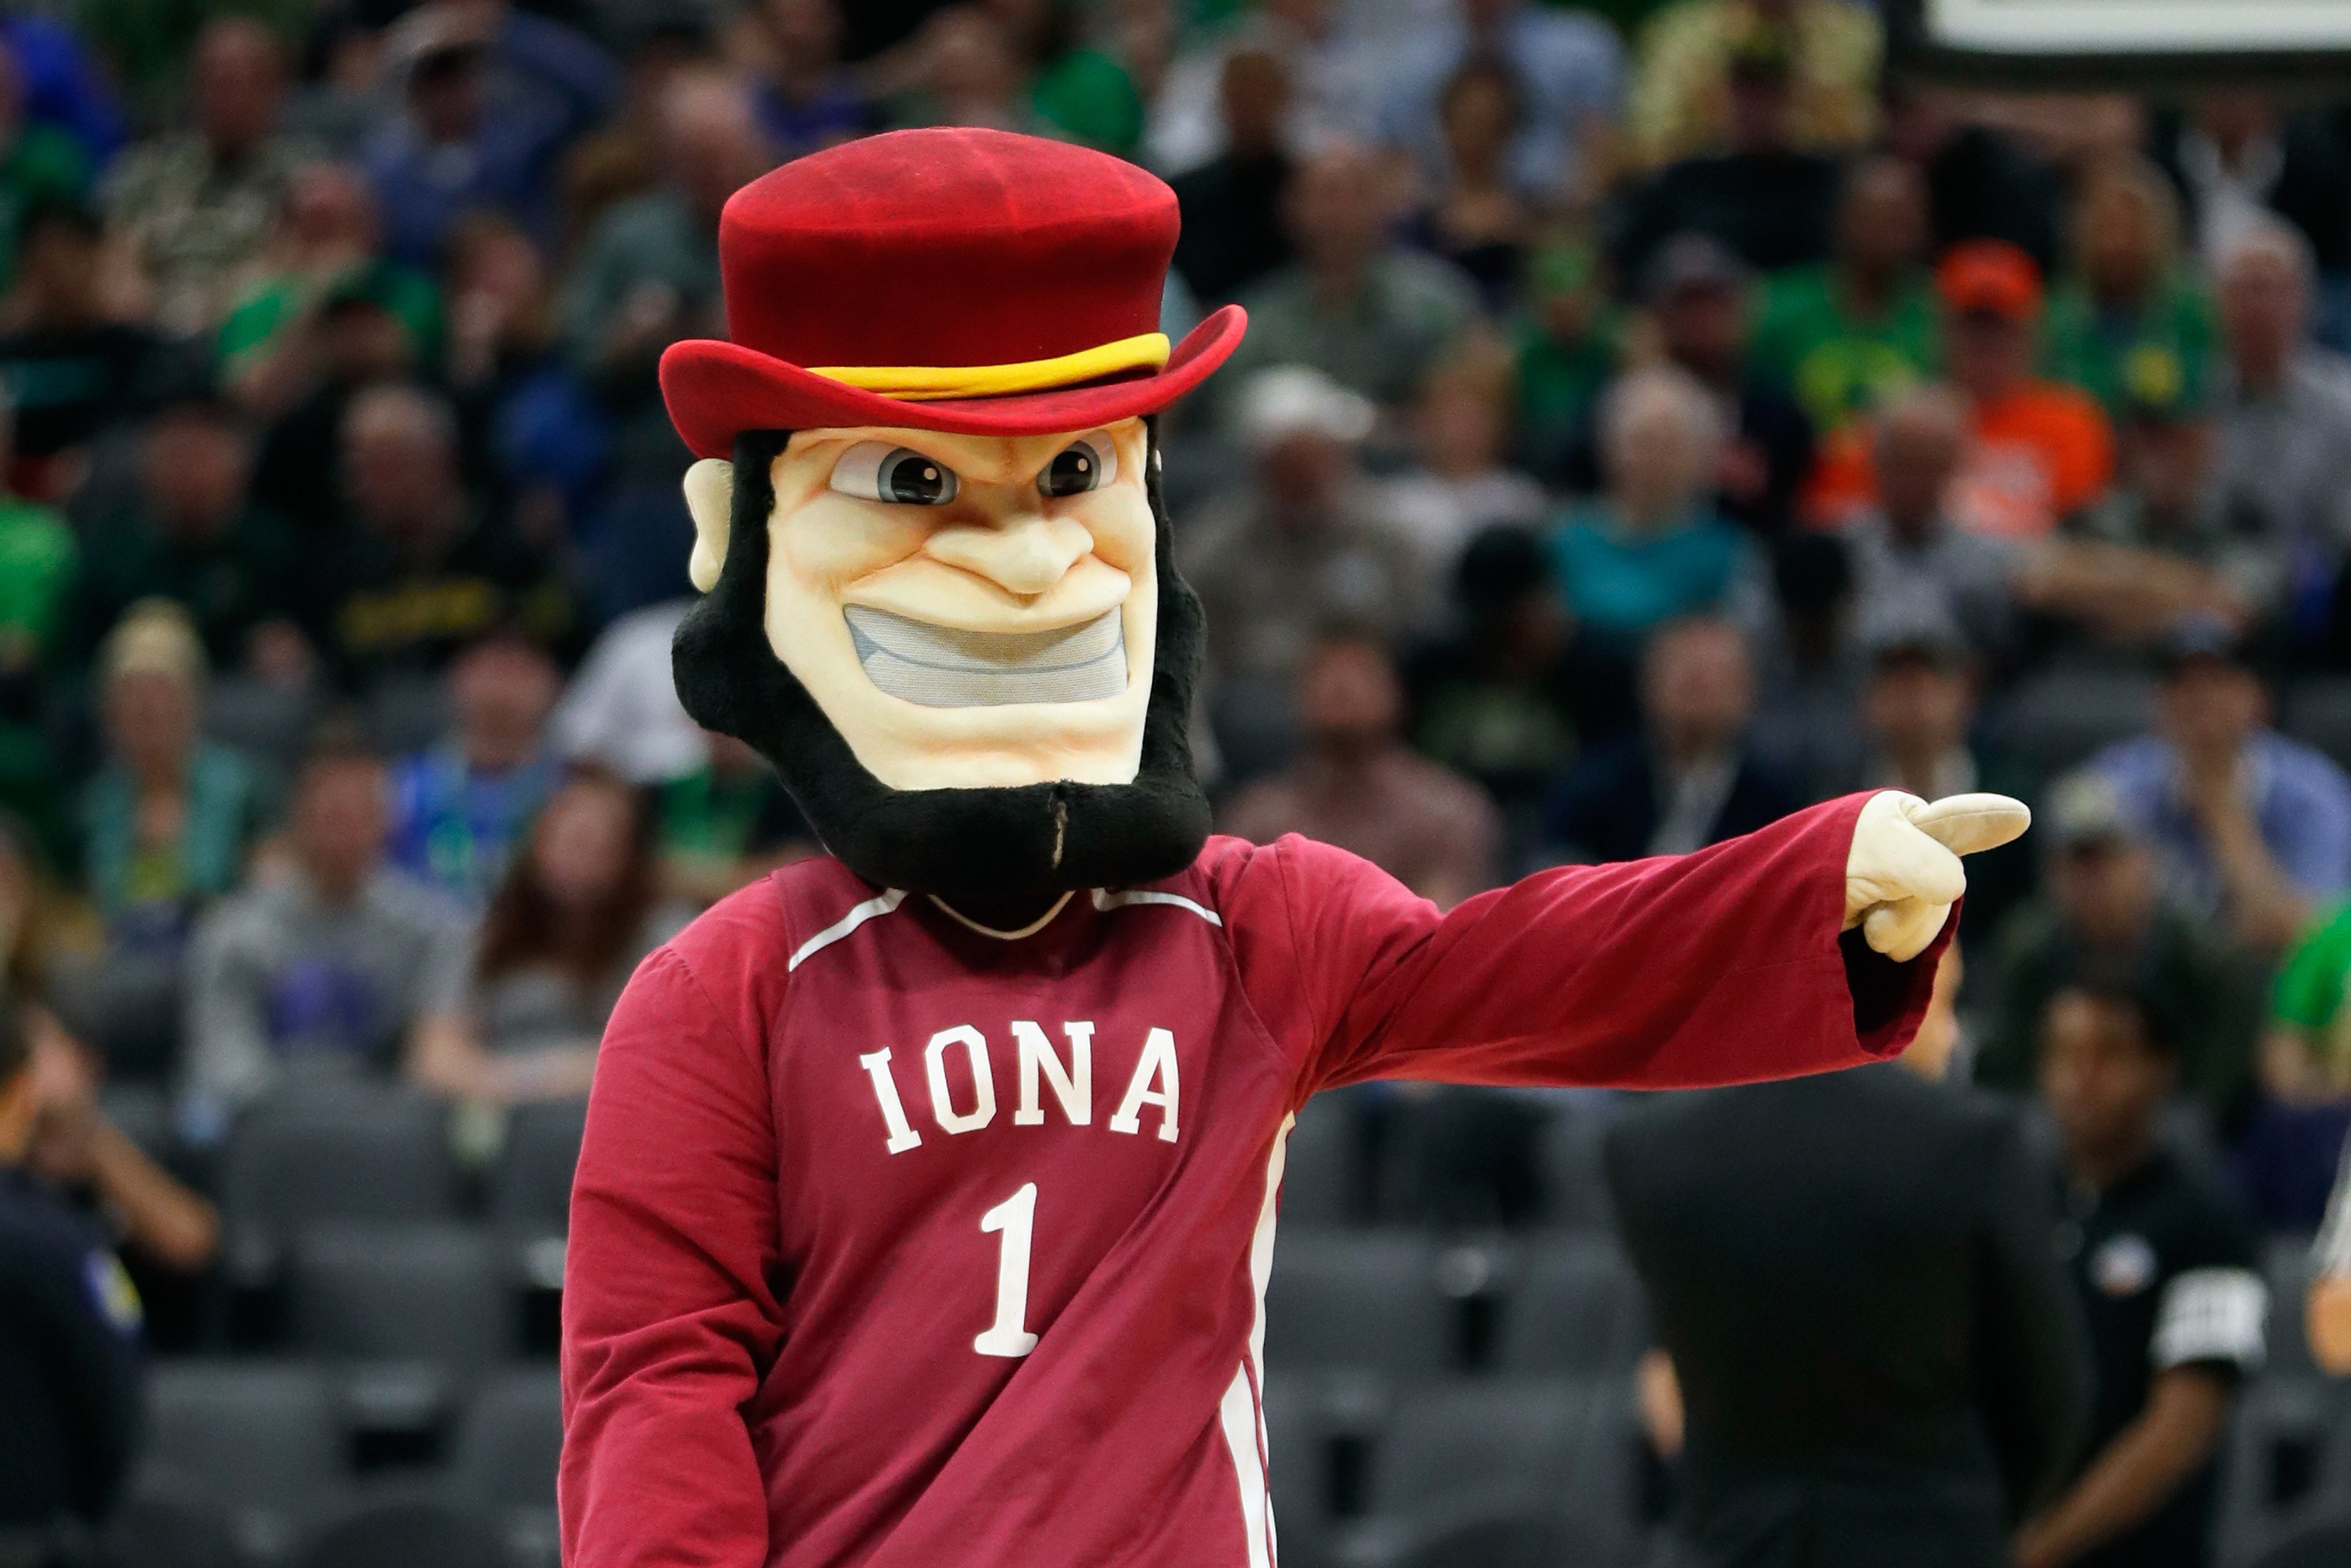 Iona Gaels mascot in red hat and jersey.